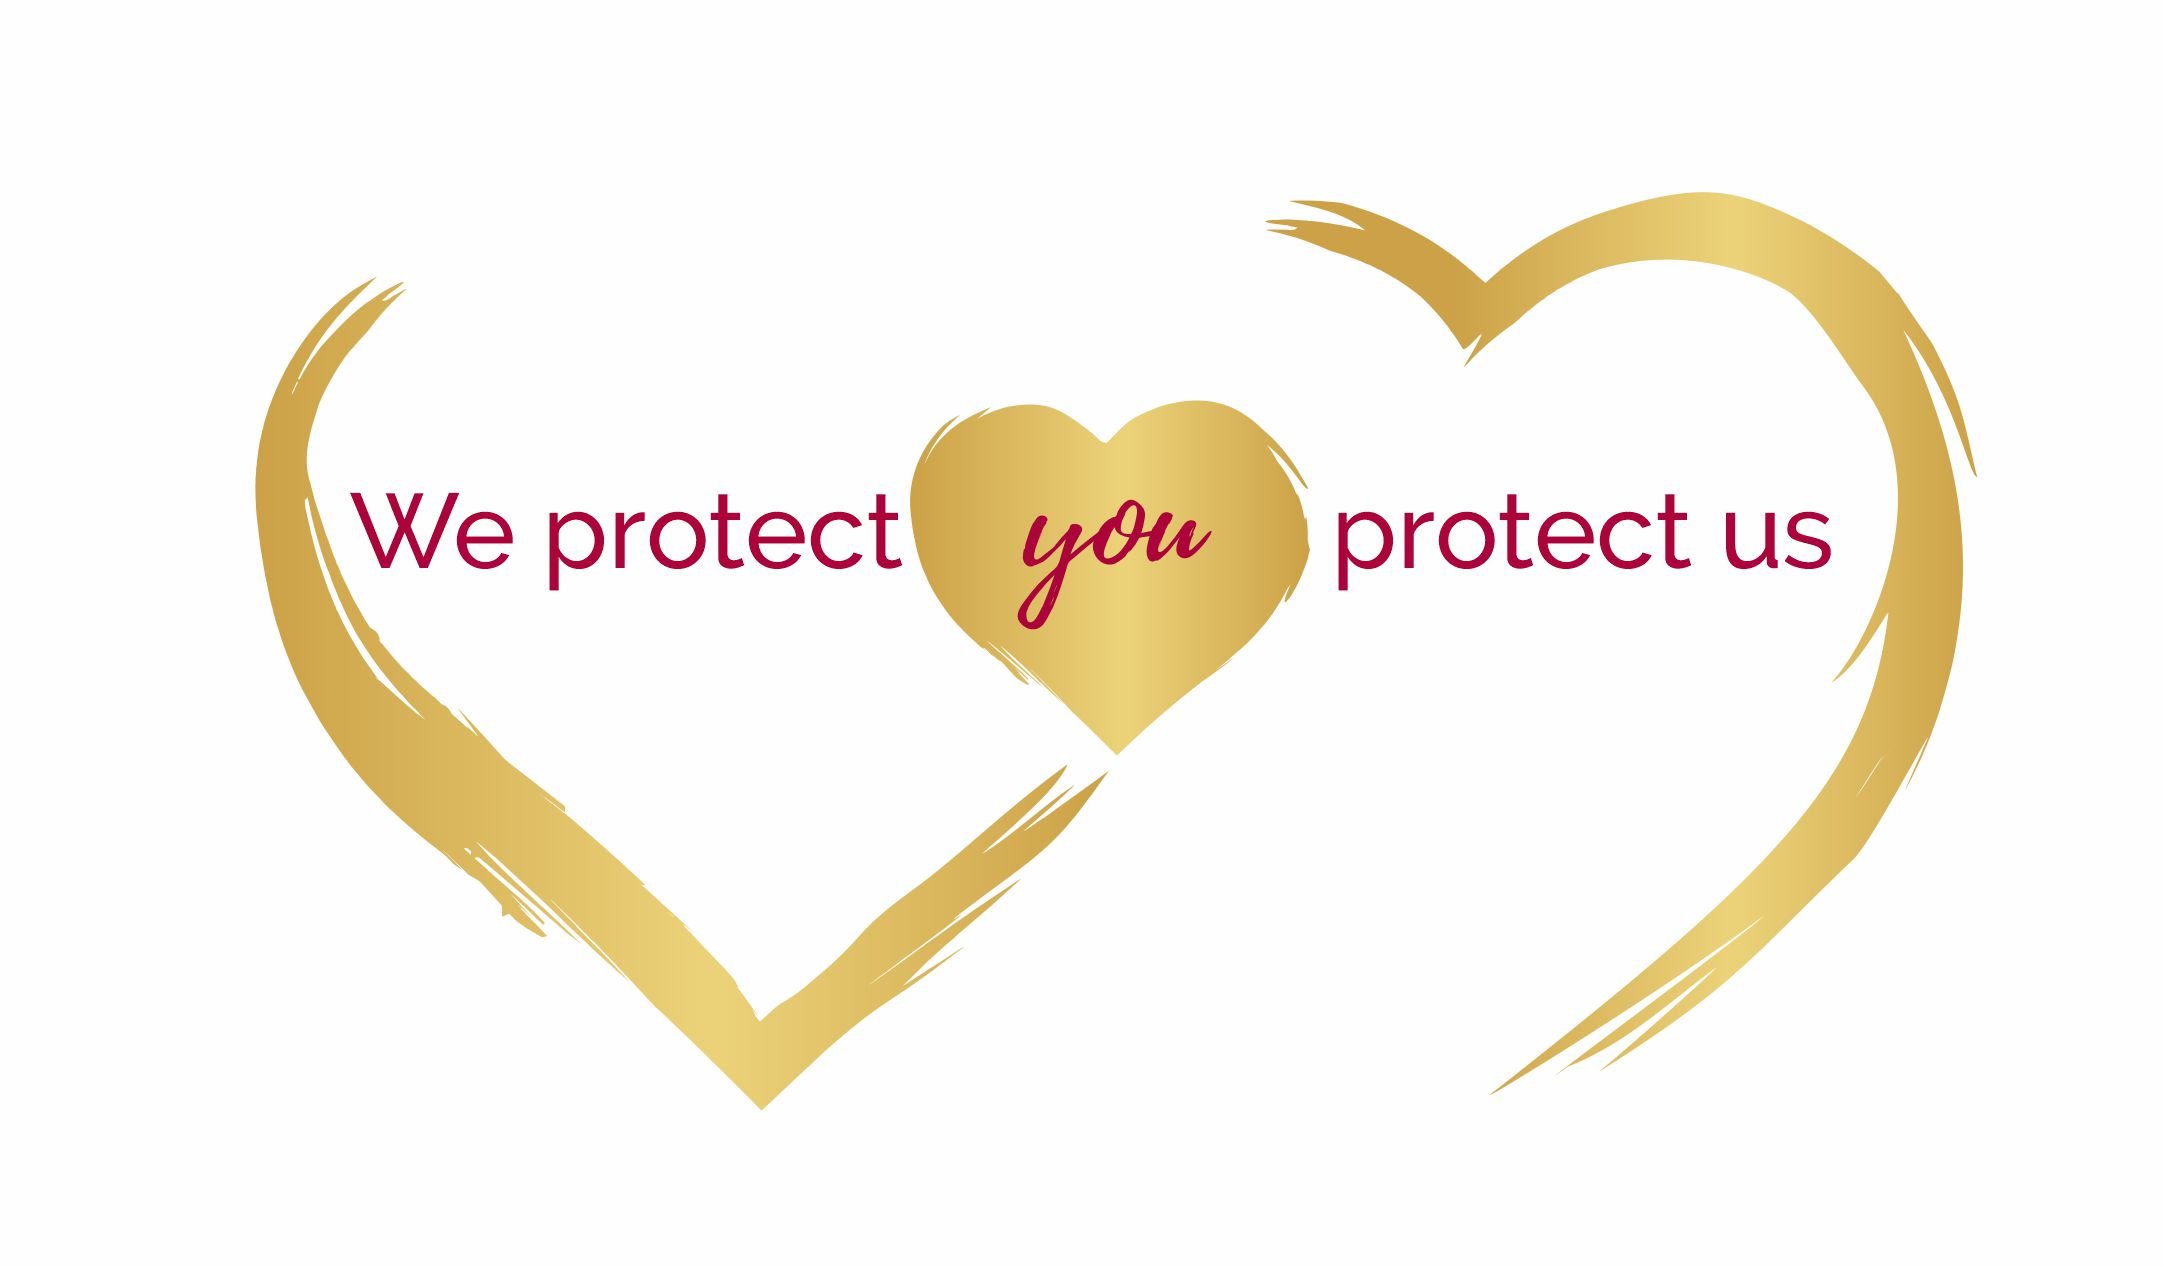 GF Hoteles - We protect you protec us